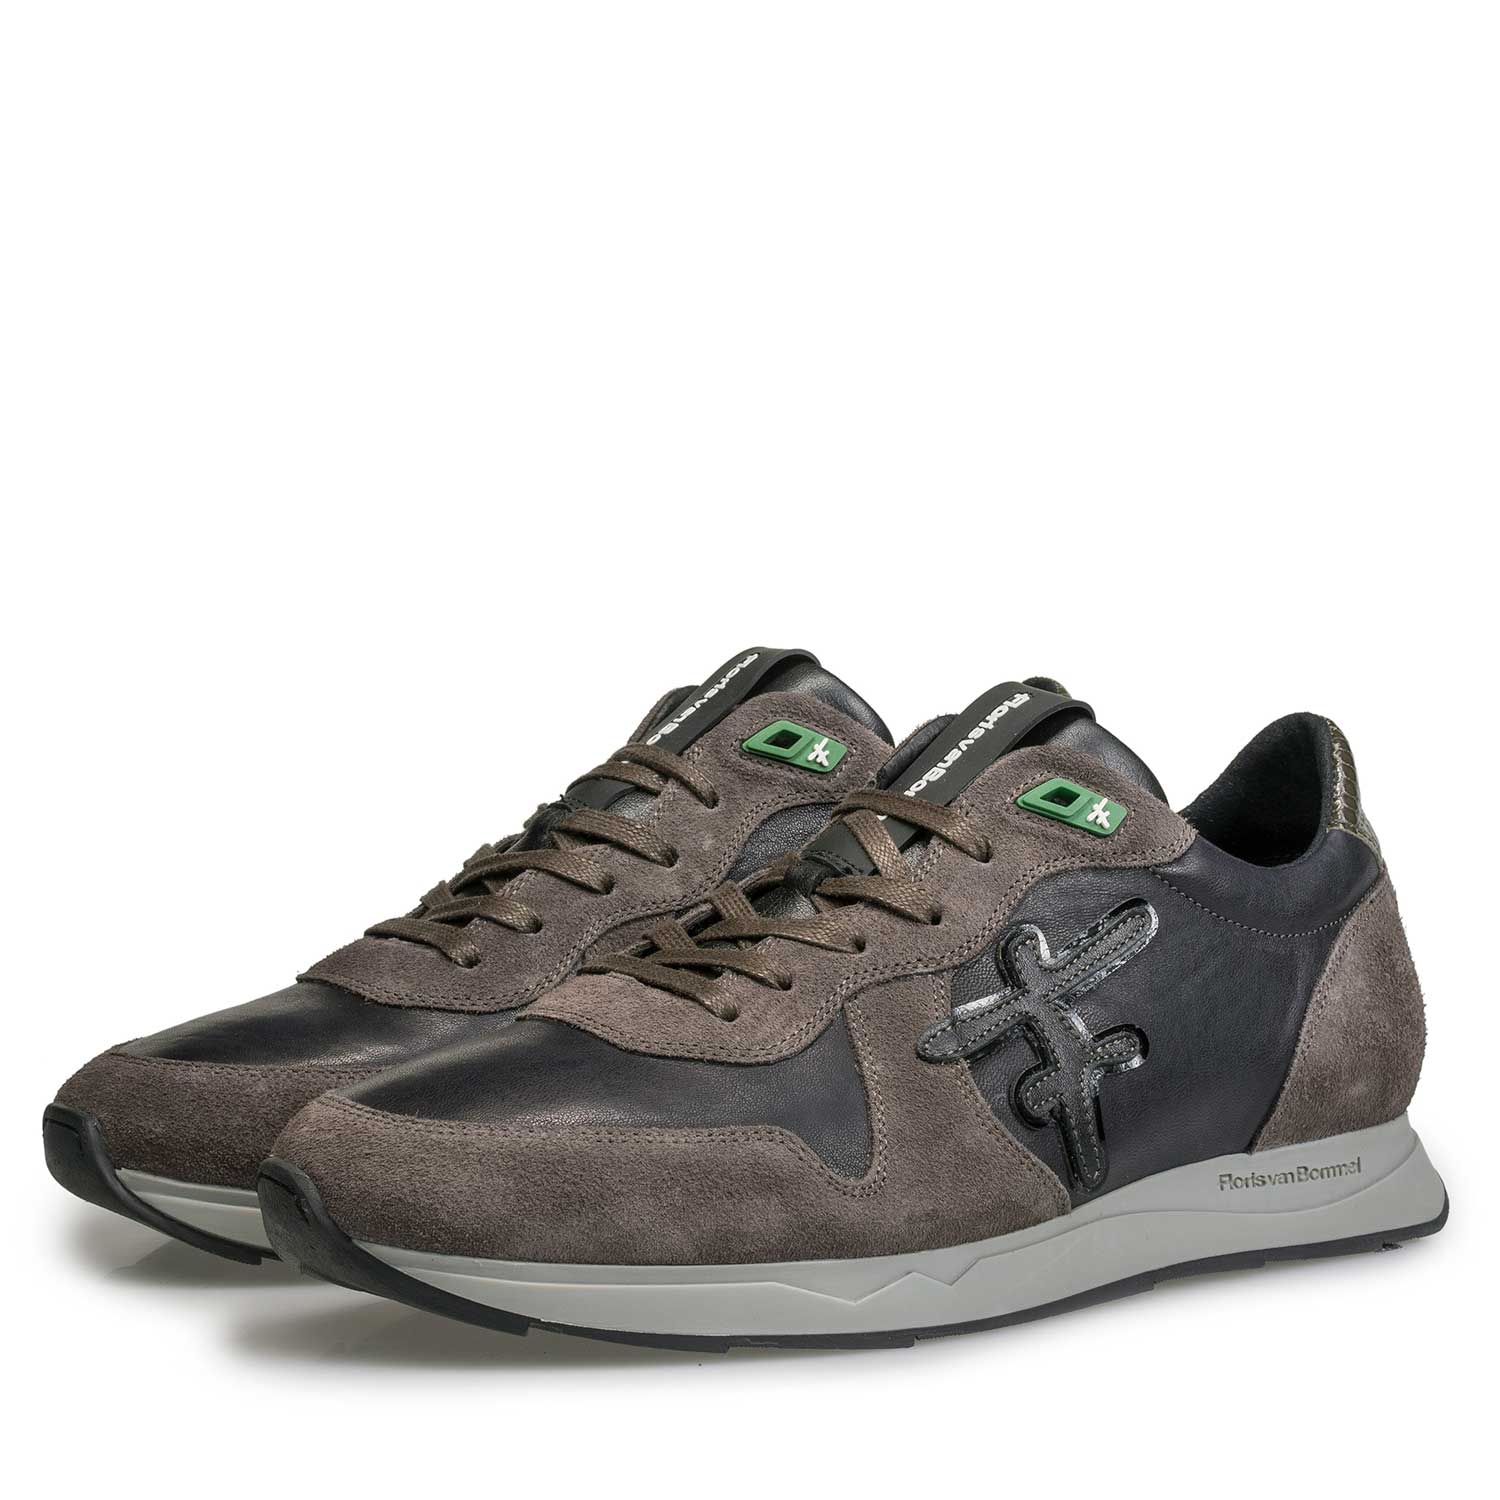 16226/05 - Blue / Grey-brown leather sneaker with F-logo